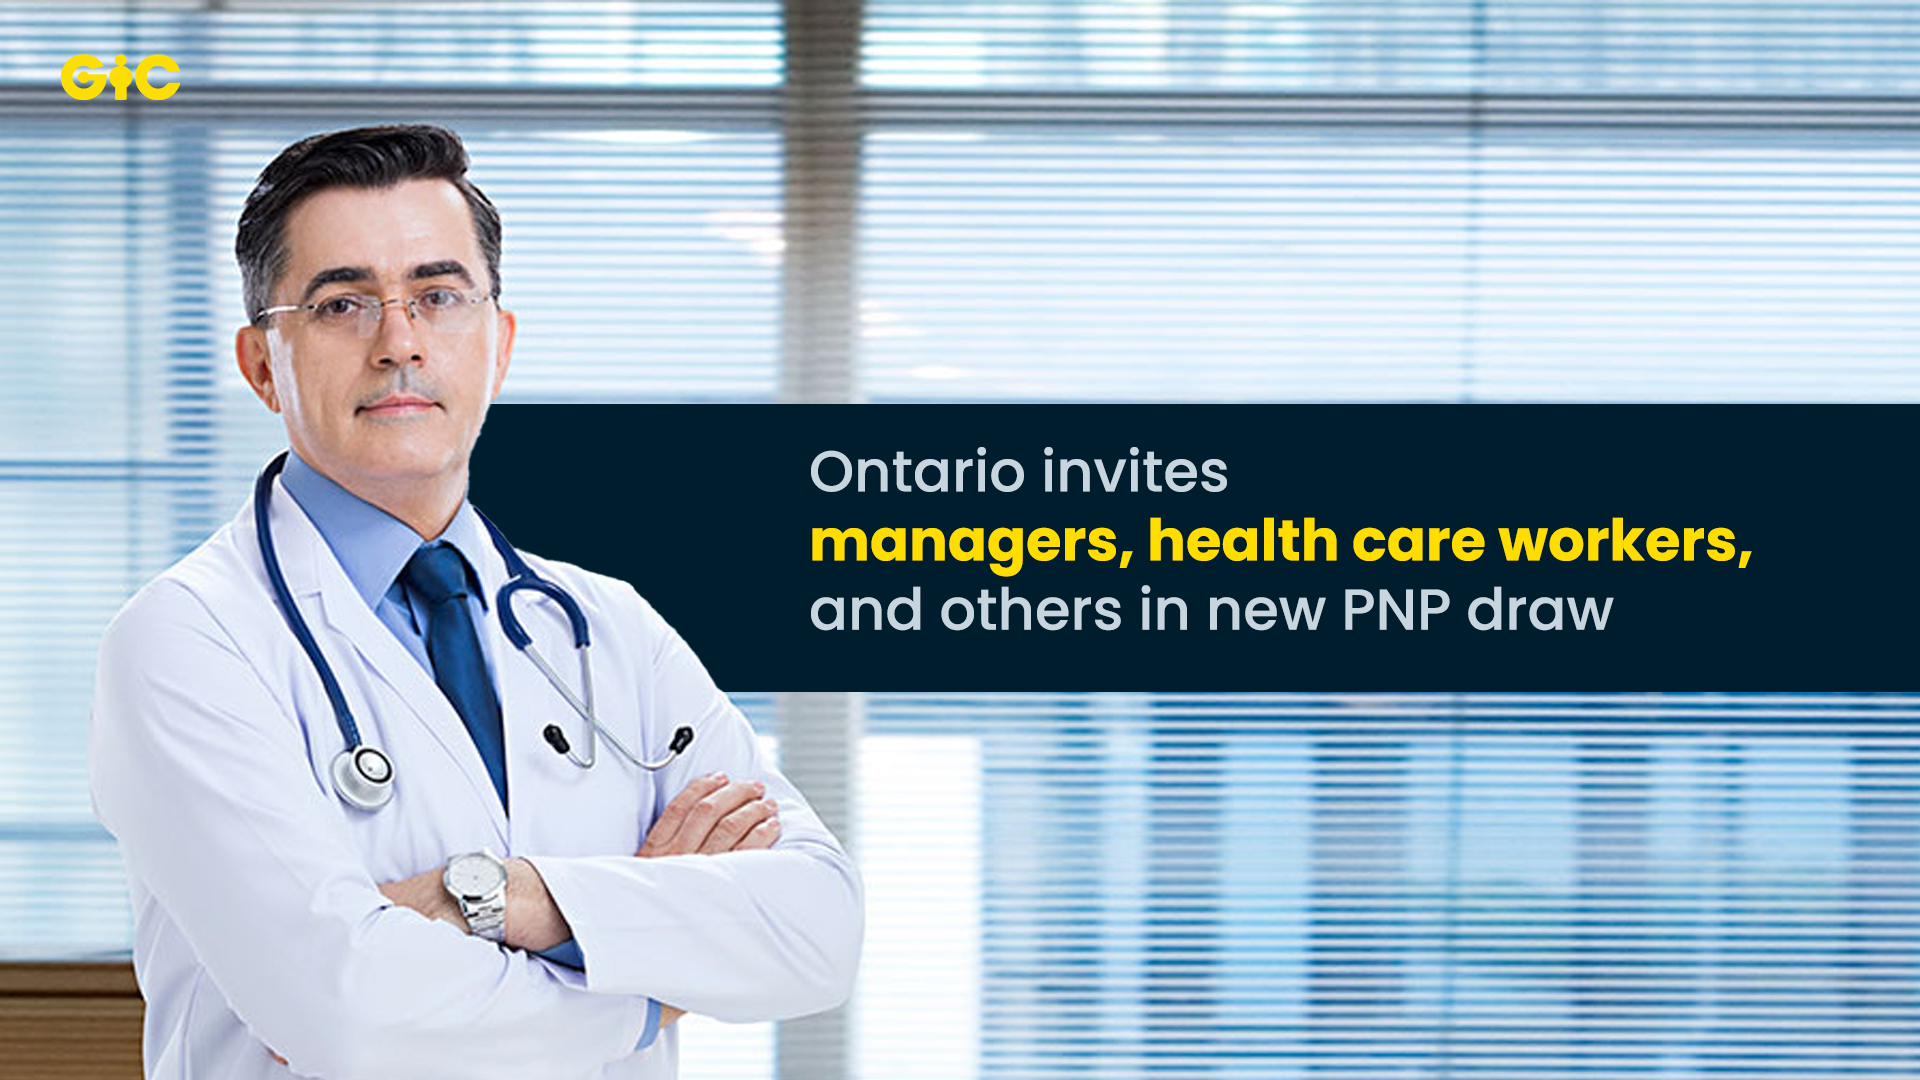 Ontario invites managers, health care workers, and others in new PNP draw